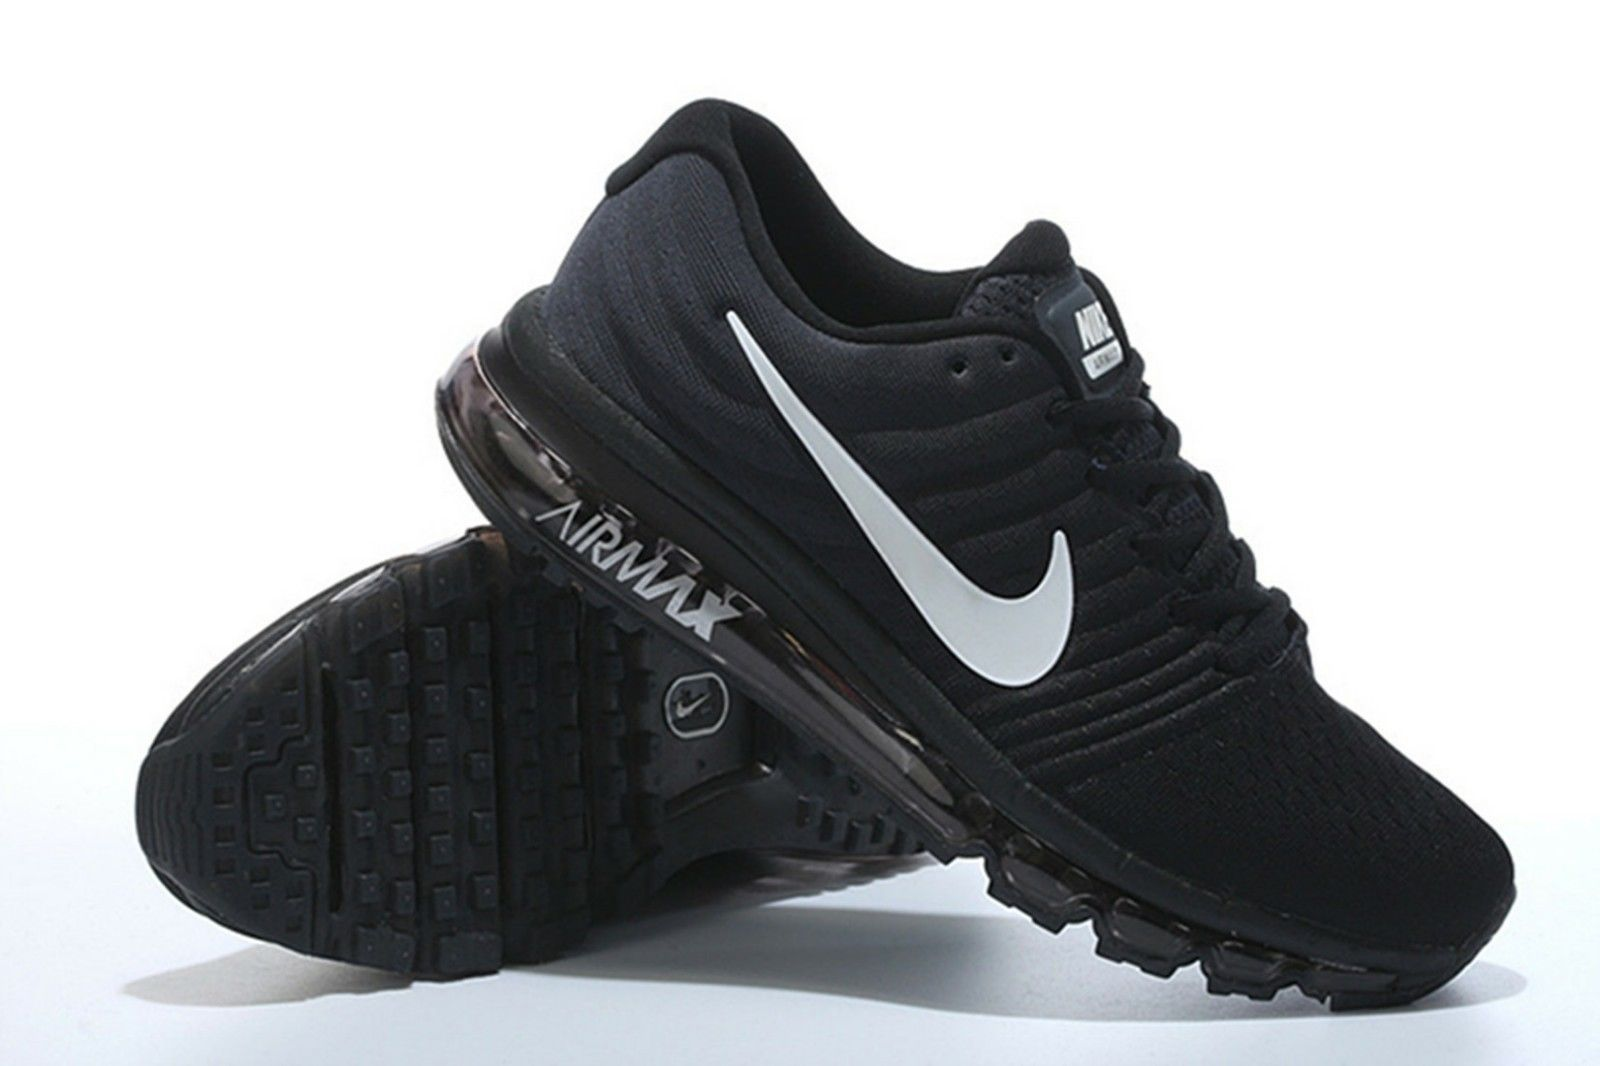 d269533d62 NIKE AIR MAX 2017 MENS RUNNING SHOES SIZE 10 Black | Common Shopping ...